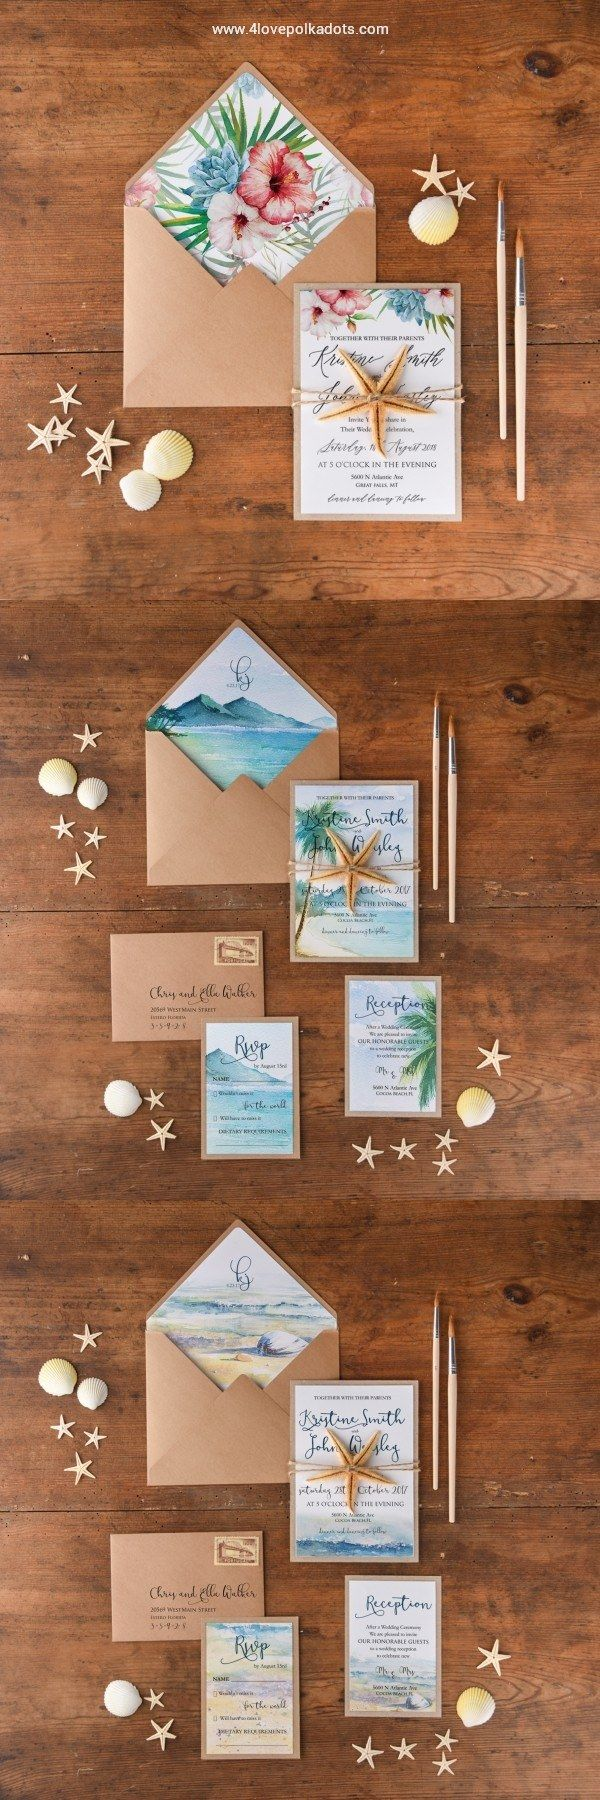 Watercolor beach wedding invitation with real starfish 4lovepolkadots #beach #wedding #weddingideas #tropical #seaside